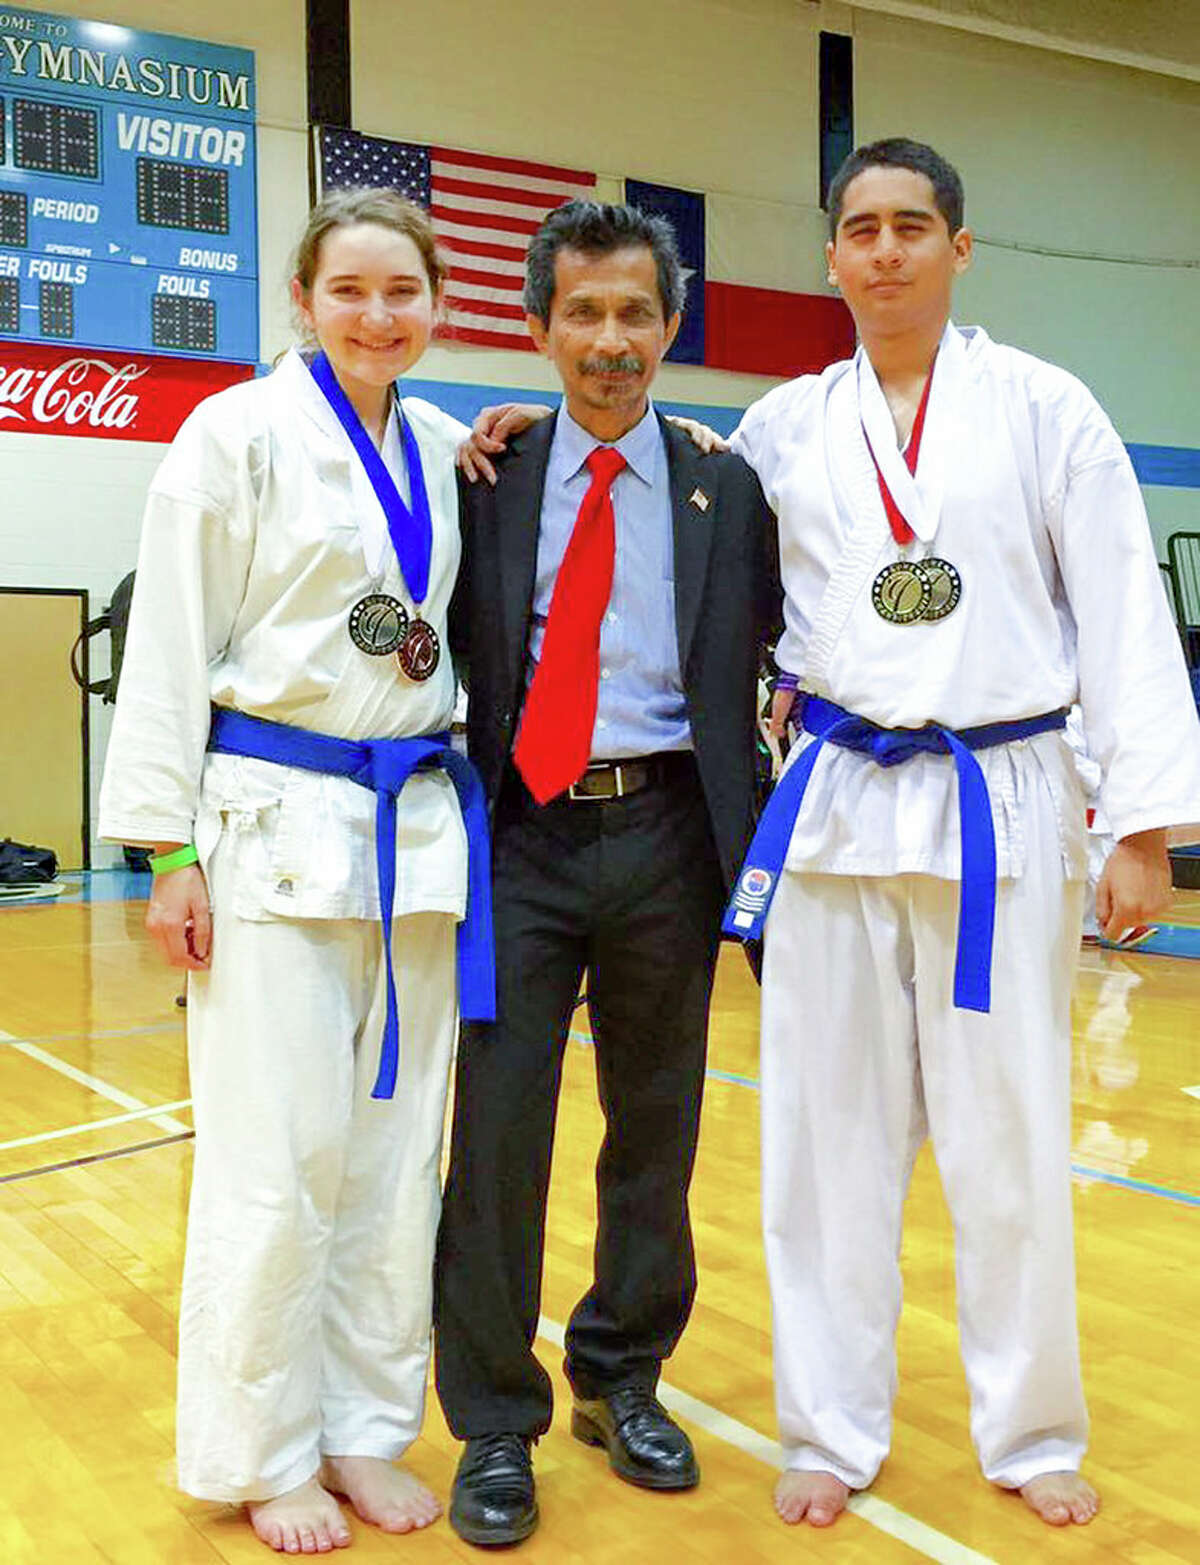 San Jacinto College martial arts instructor Deddy Mansyur, center, is flanked by San Jacinto College students Angela Olson and David Millan. Olson won a silver medal in kata (form) and a bronze medal in kumite (sparring) recently. Millan won a gold medal in kata and a silver medal in kumite.